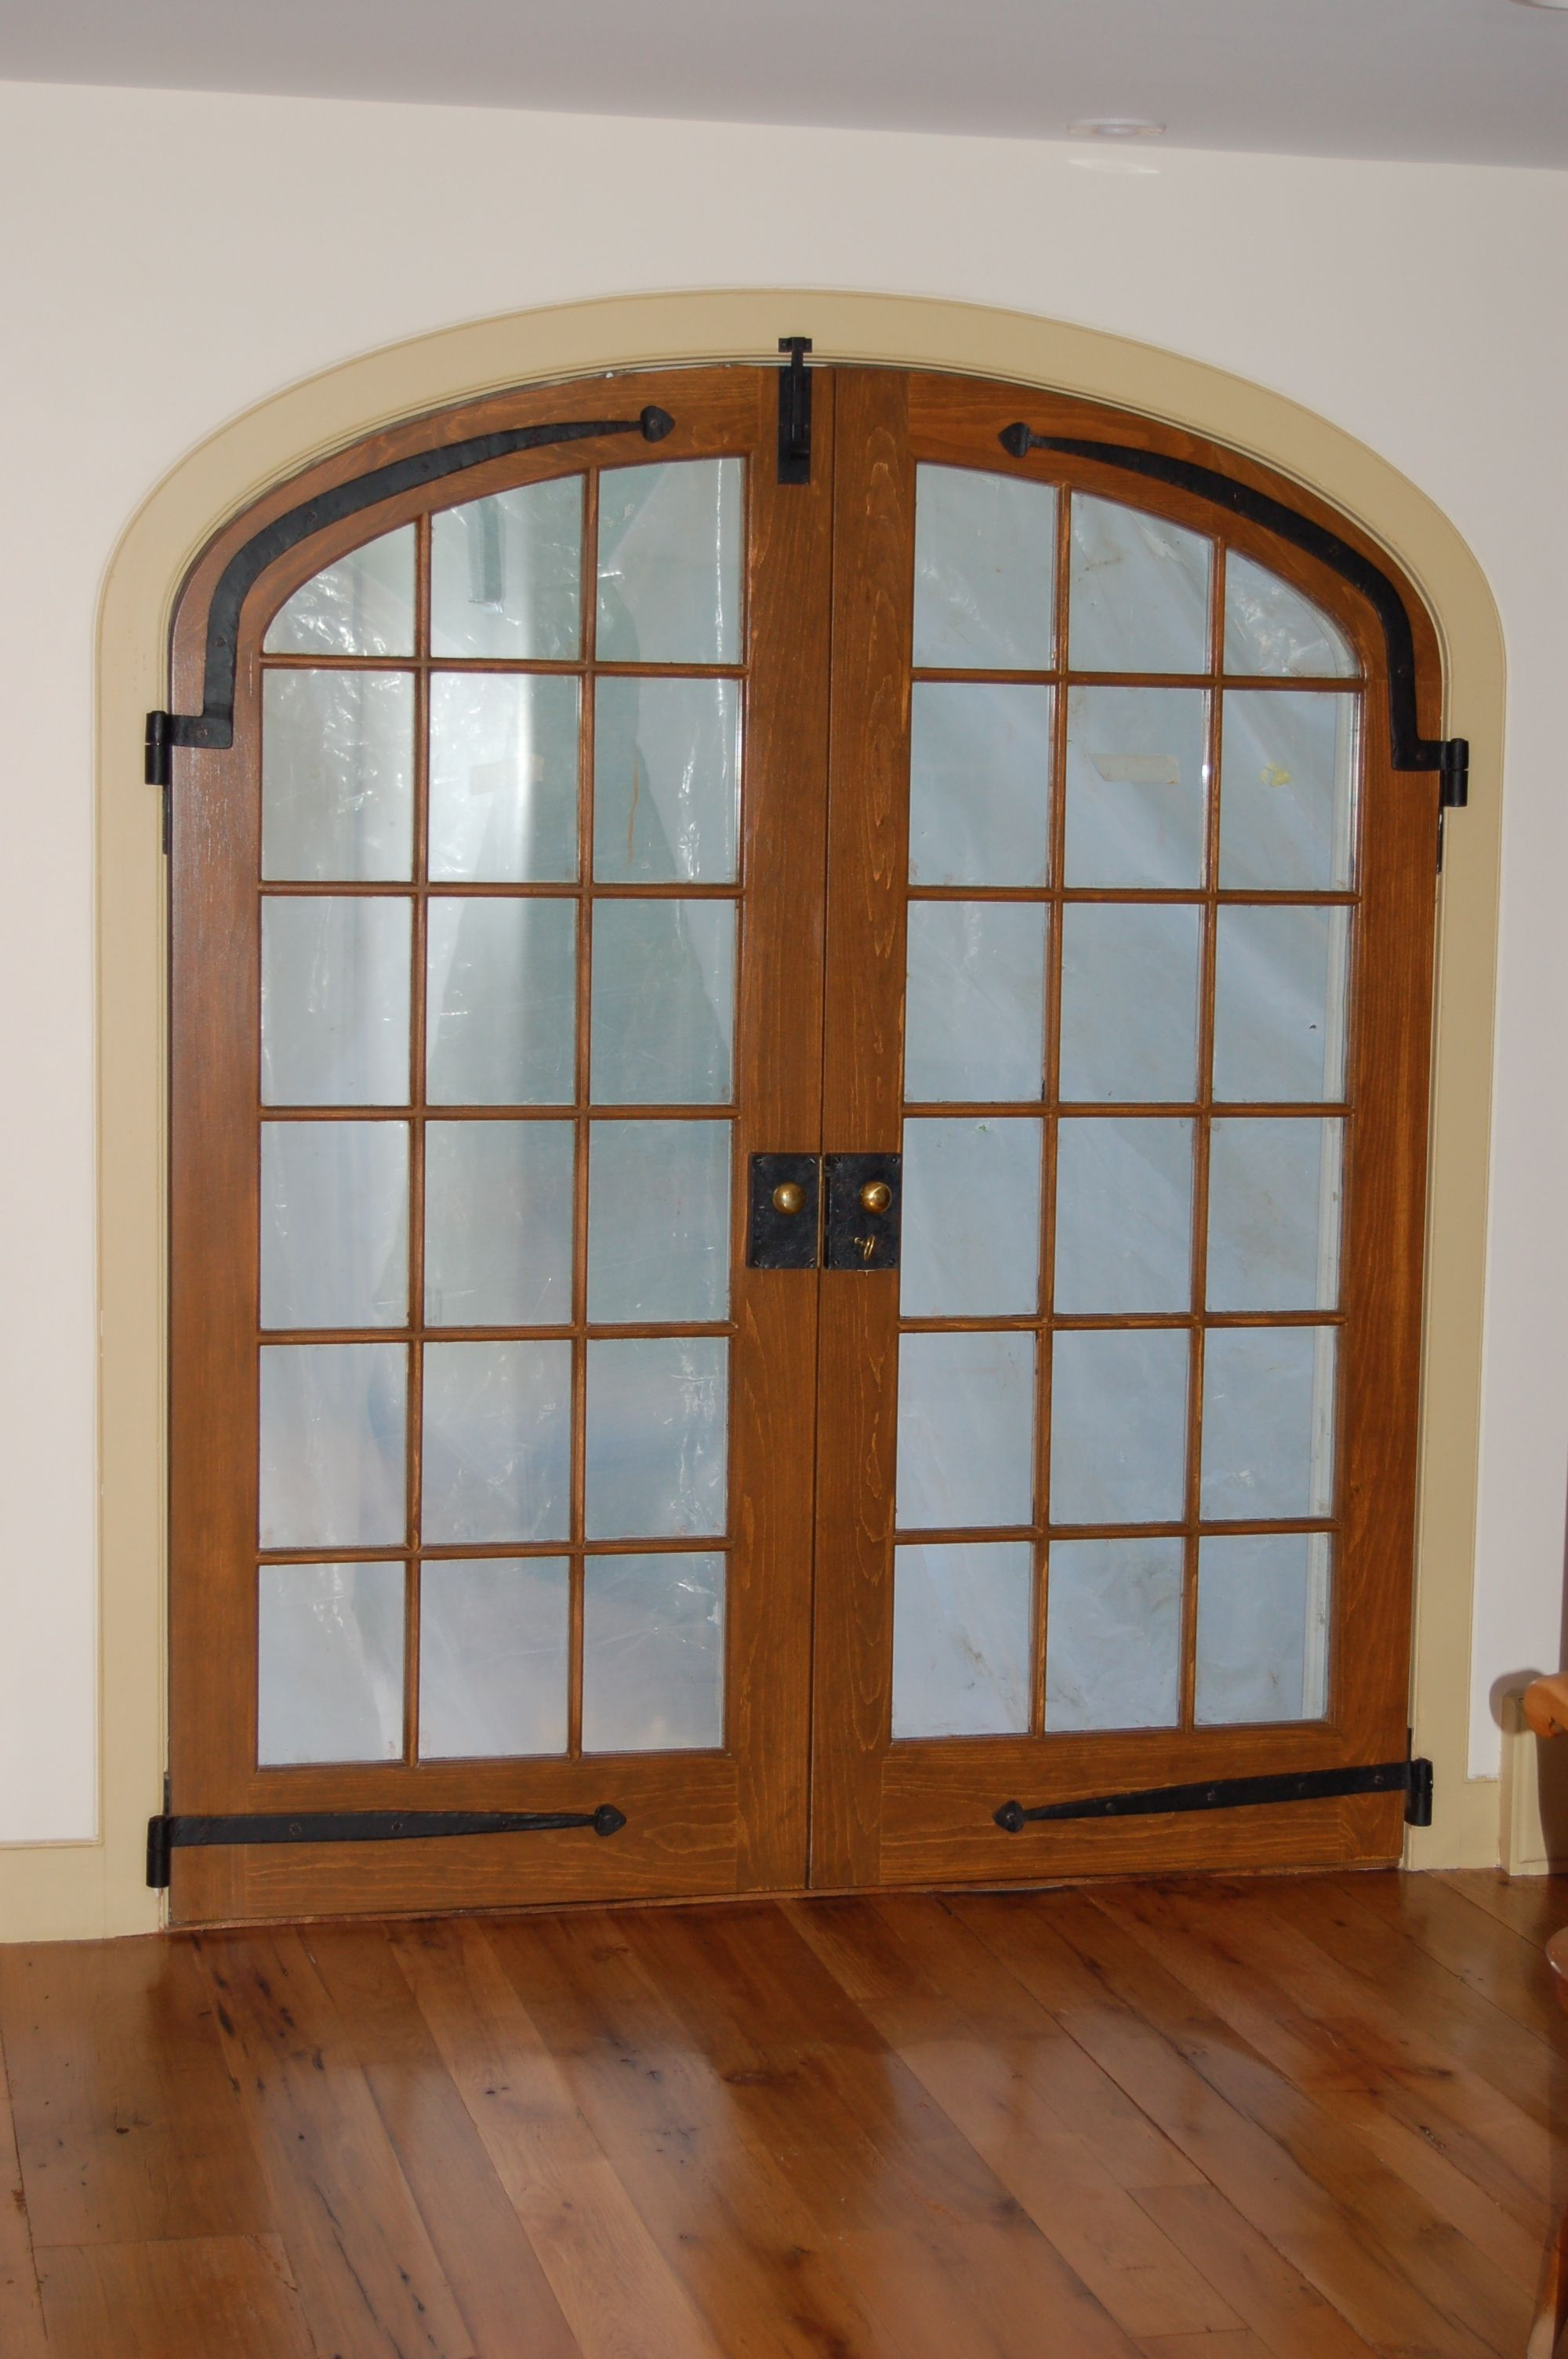 Ordinaire Interior Double French Doors With Transom